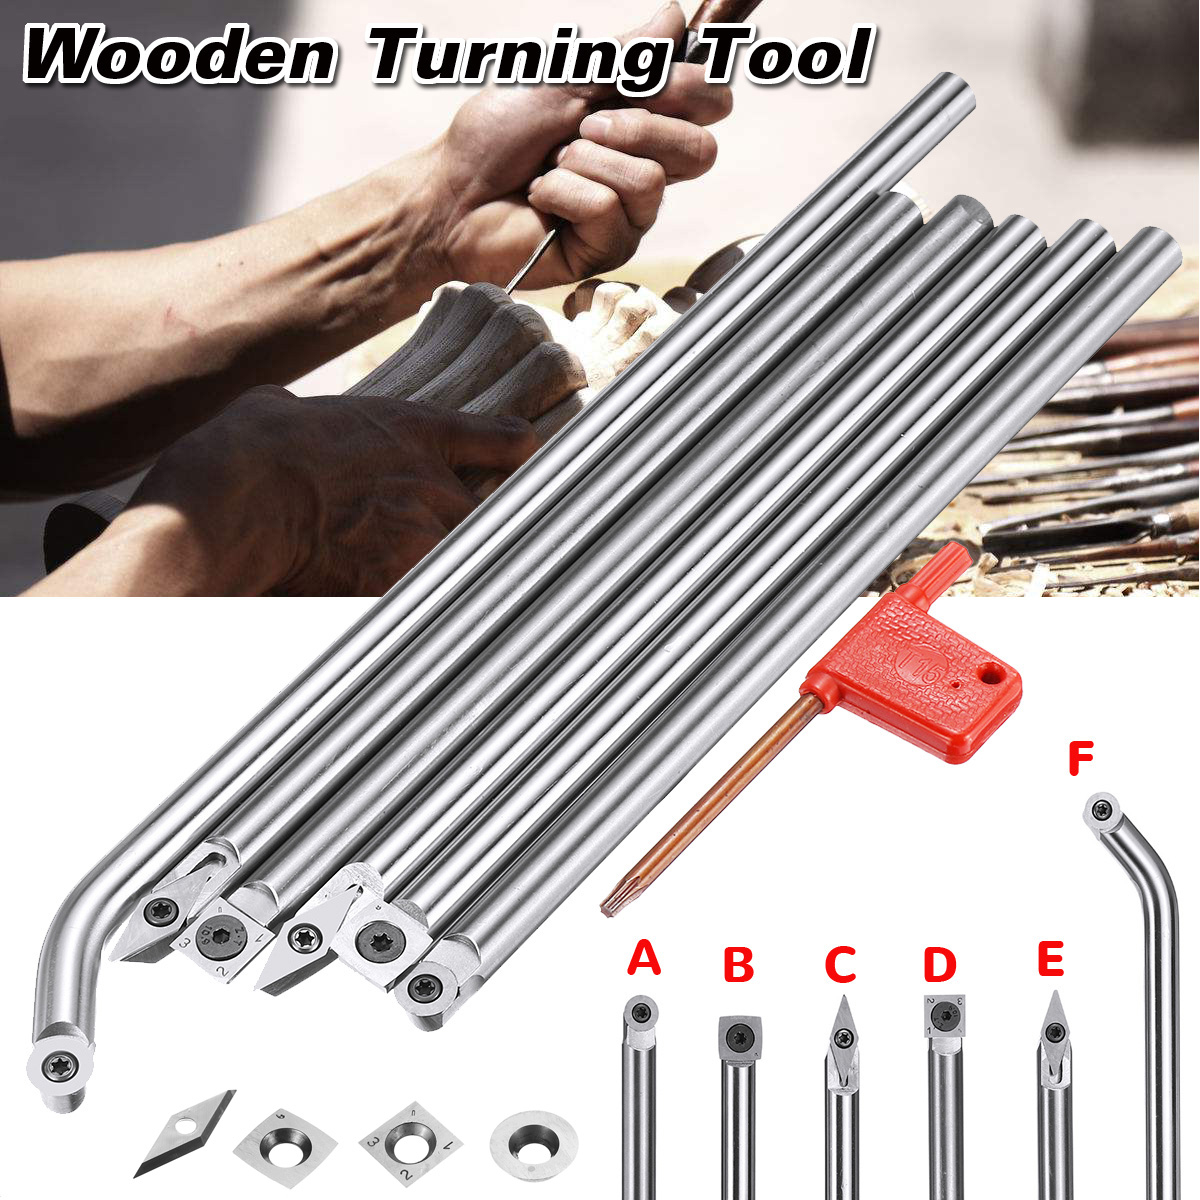 DIY Wood Turning Tool Chisel Carbide Tip Round Insert Cutter Tool Angled Shank Woodworking Tool 6 Size